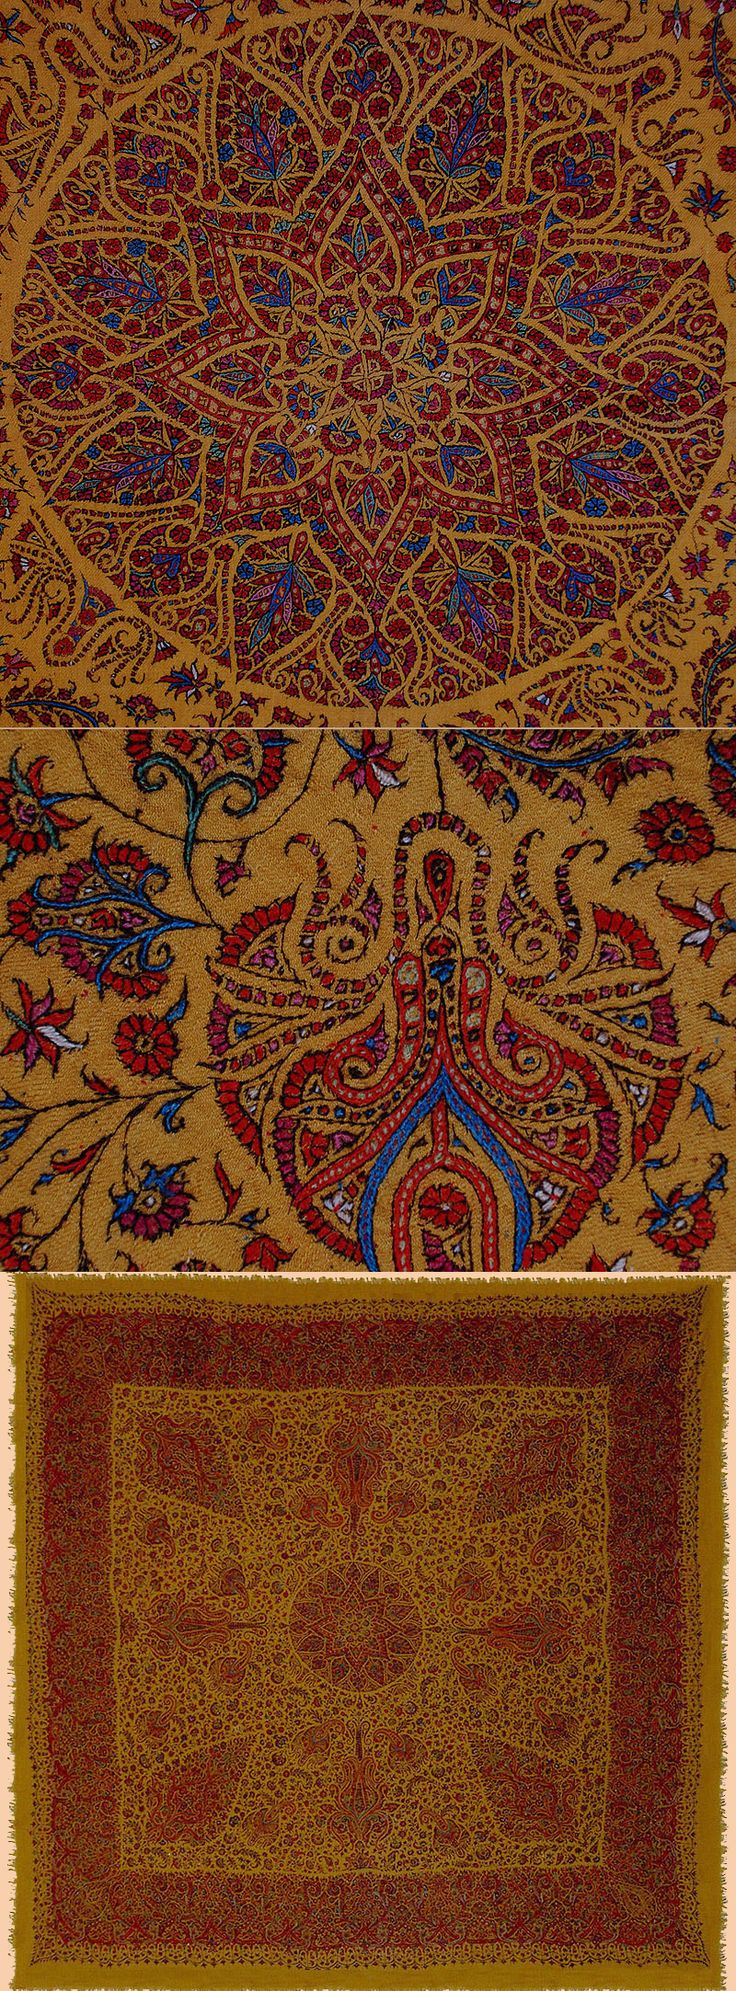 Antique Persian Shawl .Extremely fine Kerman Pateh-Duzi Embroidery wool on wool Shawl with Saffron color Mid 19th Century